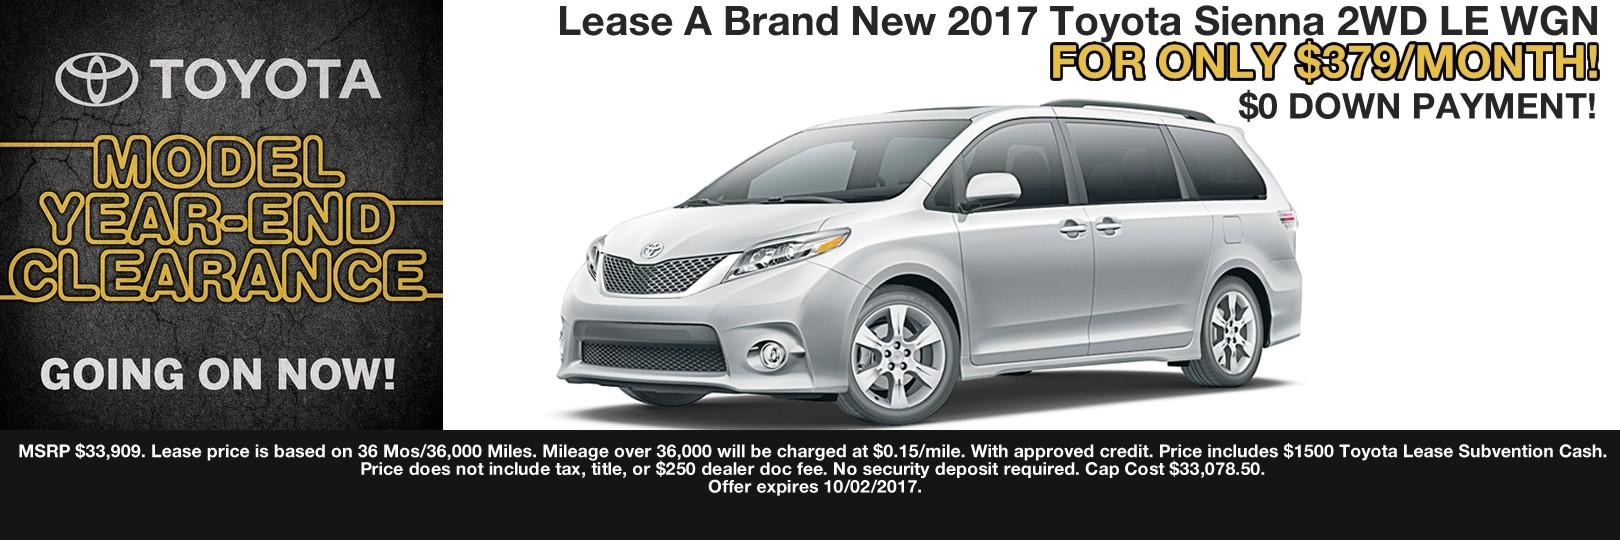 2017 SIENNA LEASE SPECIAL CAIN TOYOTA NORTH CANTON OHIO